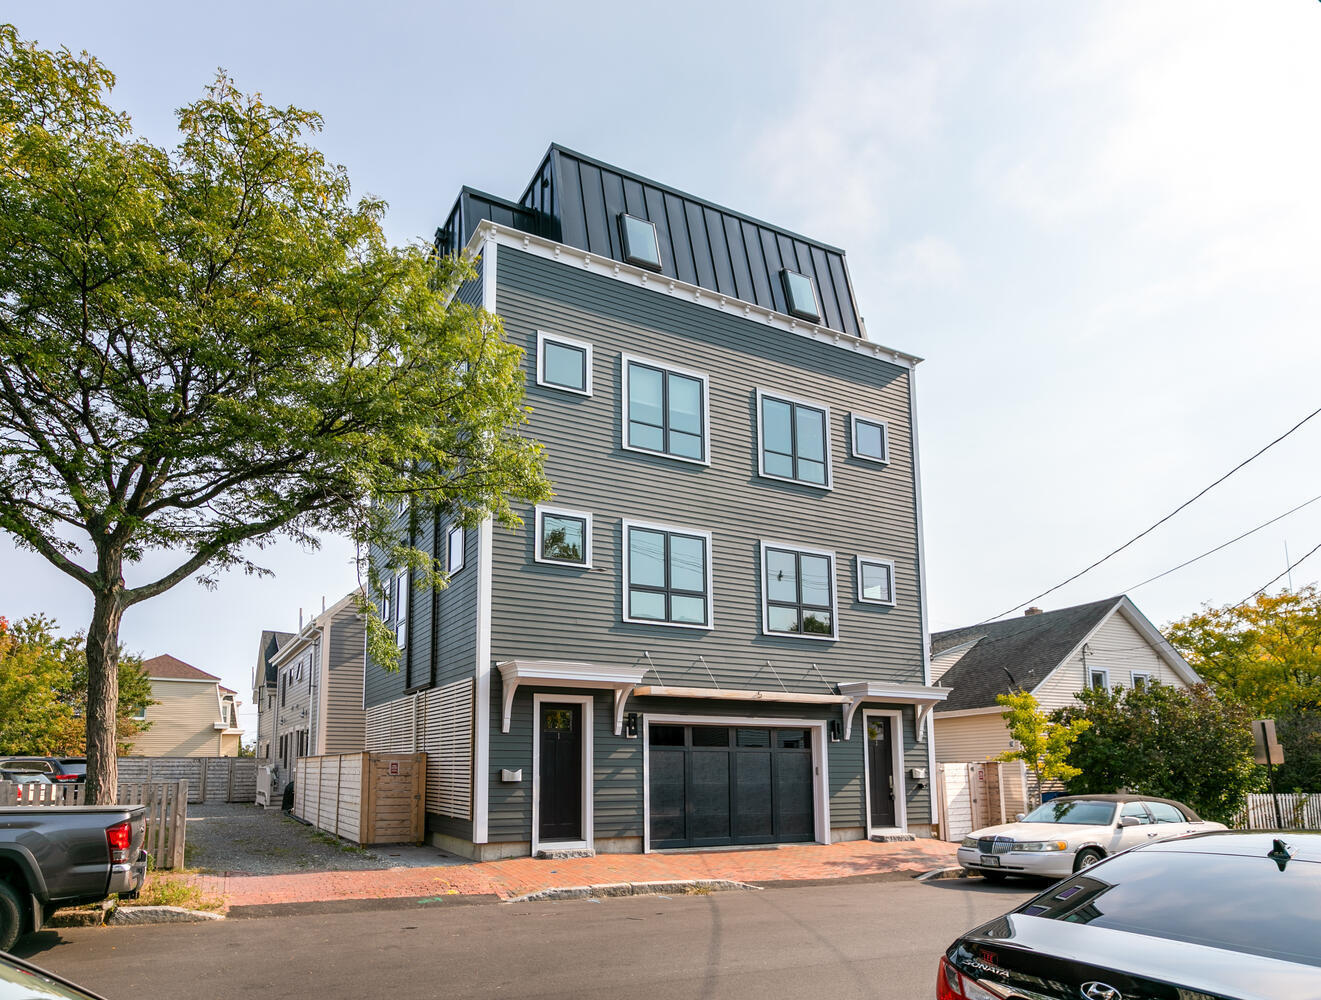 Main image for MLS listing 1471095